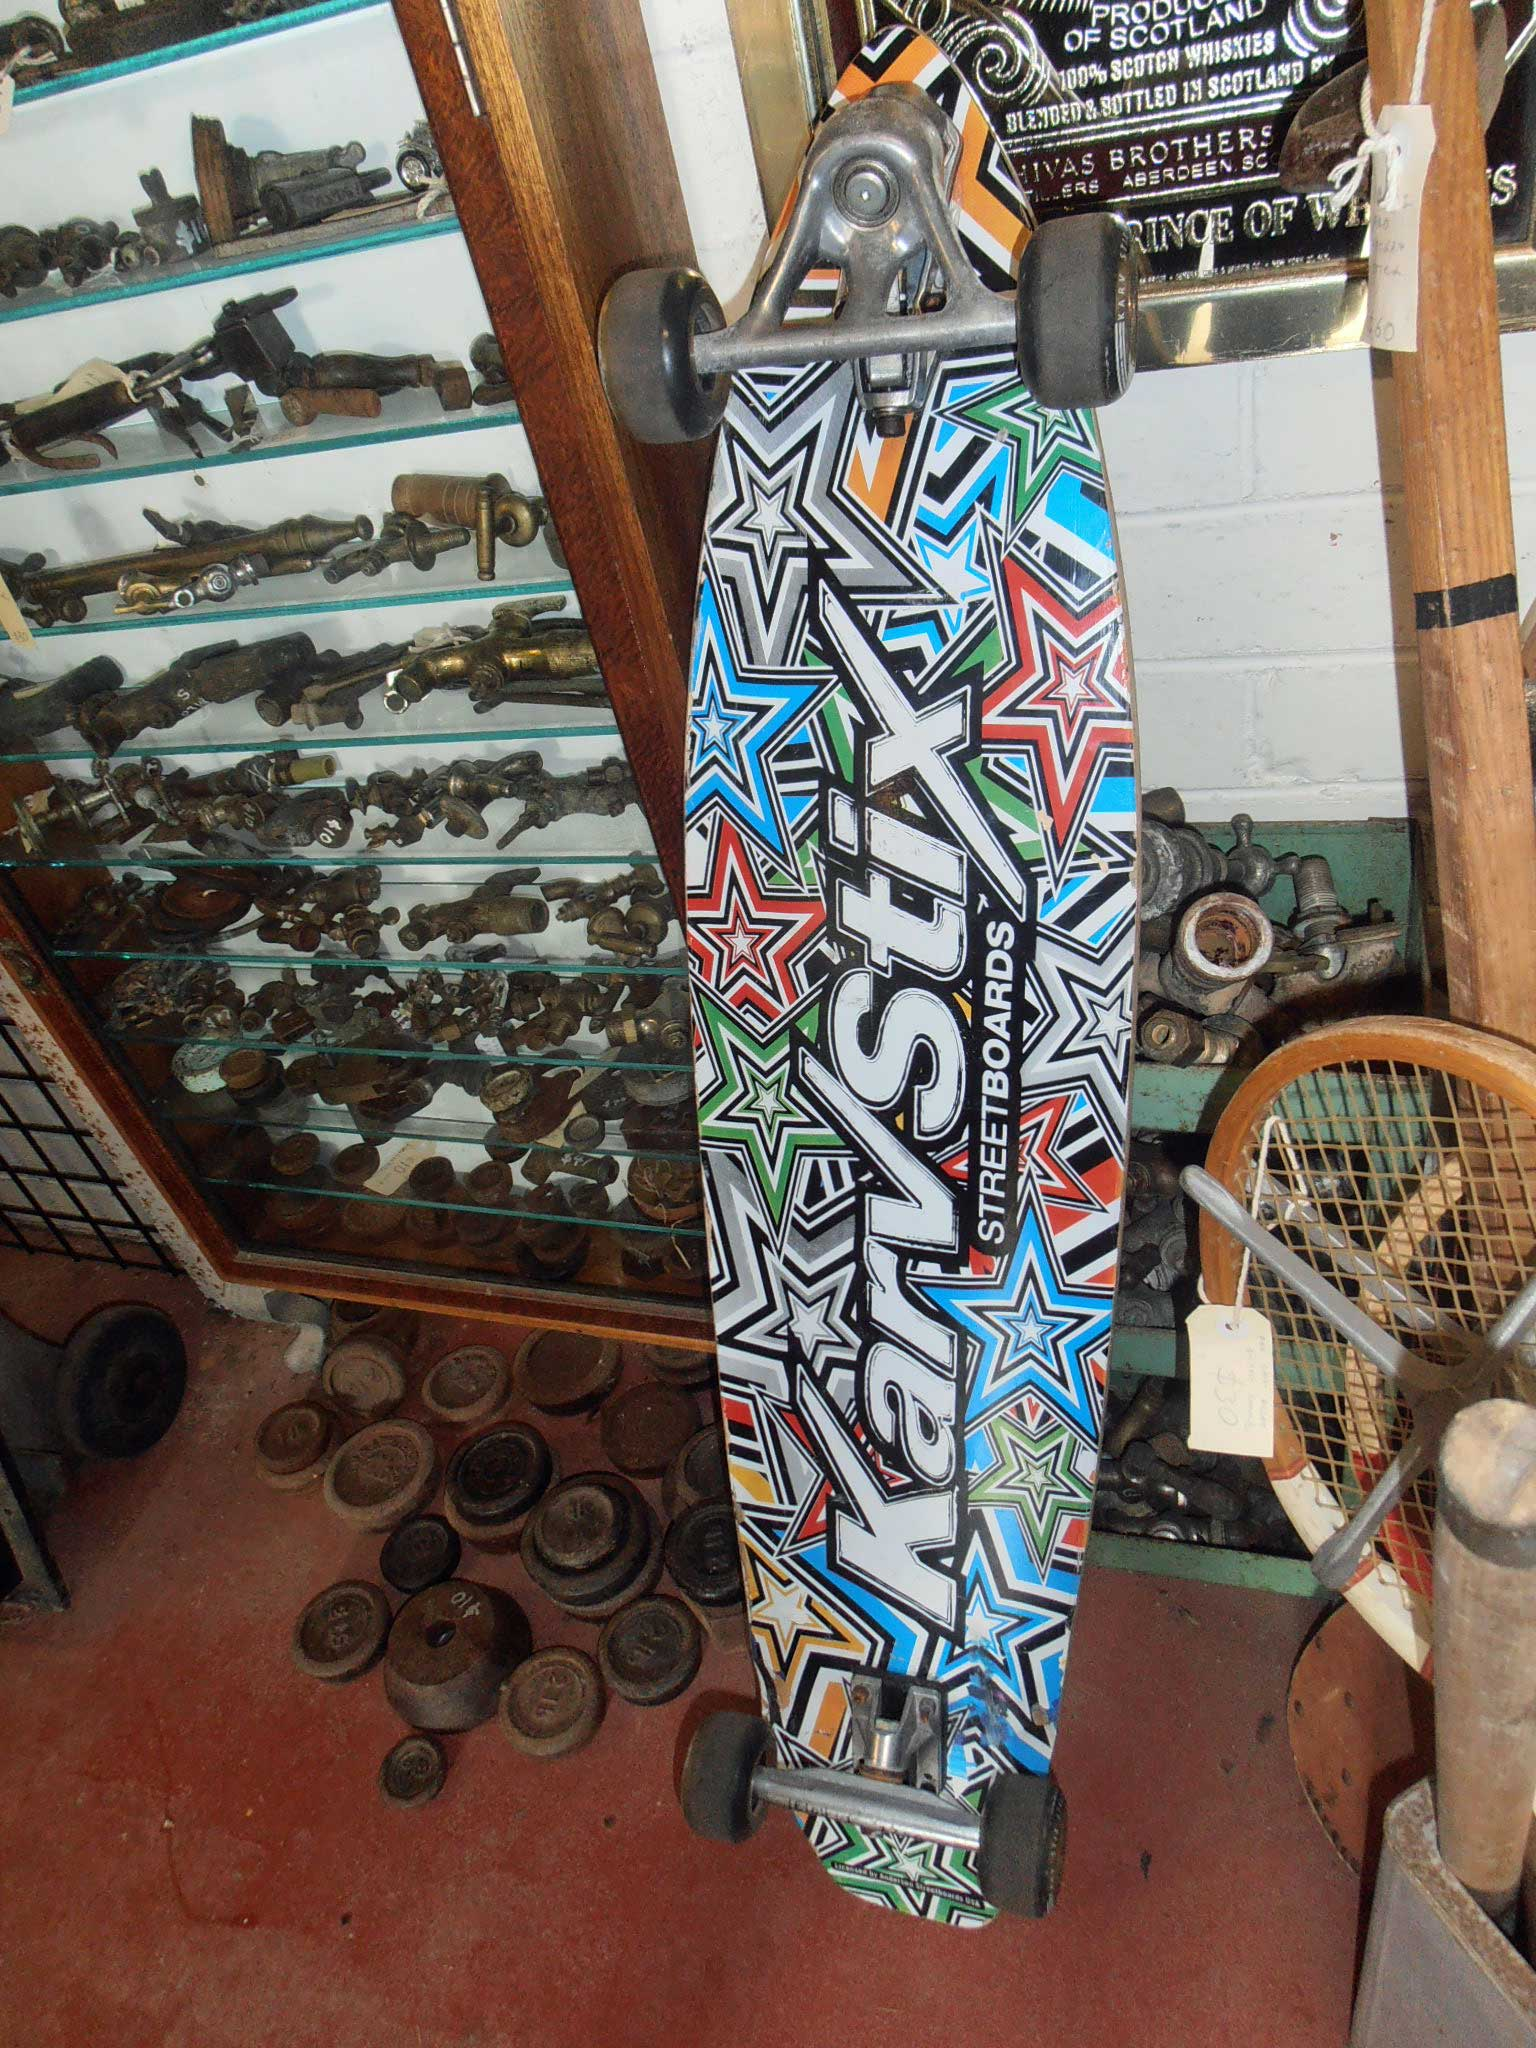 vintage skateboards For sale at Heaths Old Wares, Antiques, Collectables and industrial antiques 12 station St bangalow NSW phone 0266872222 open 7 days